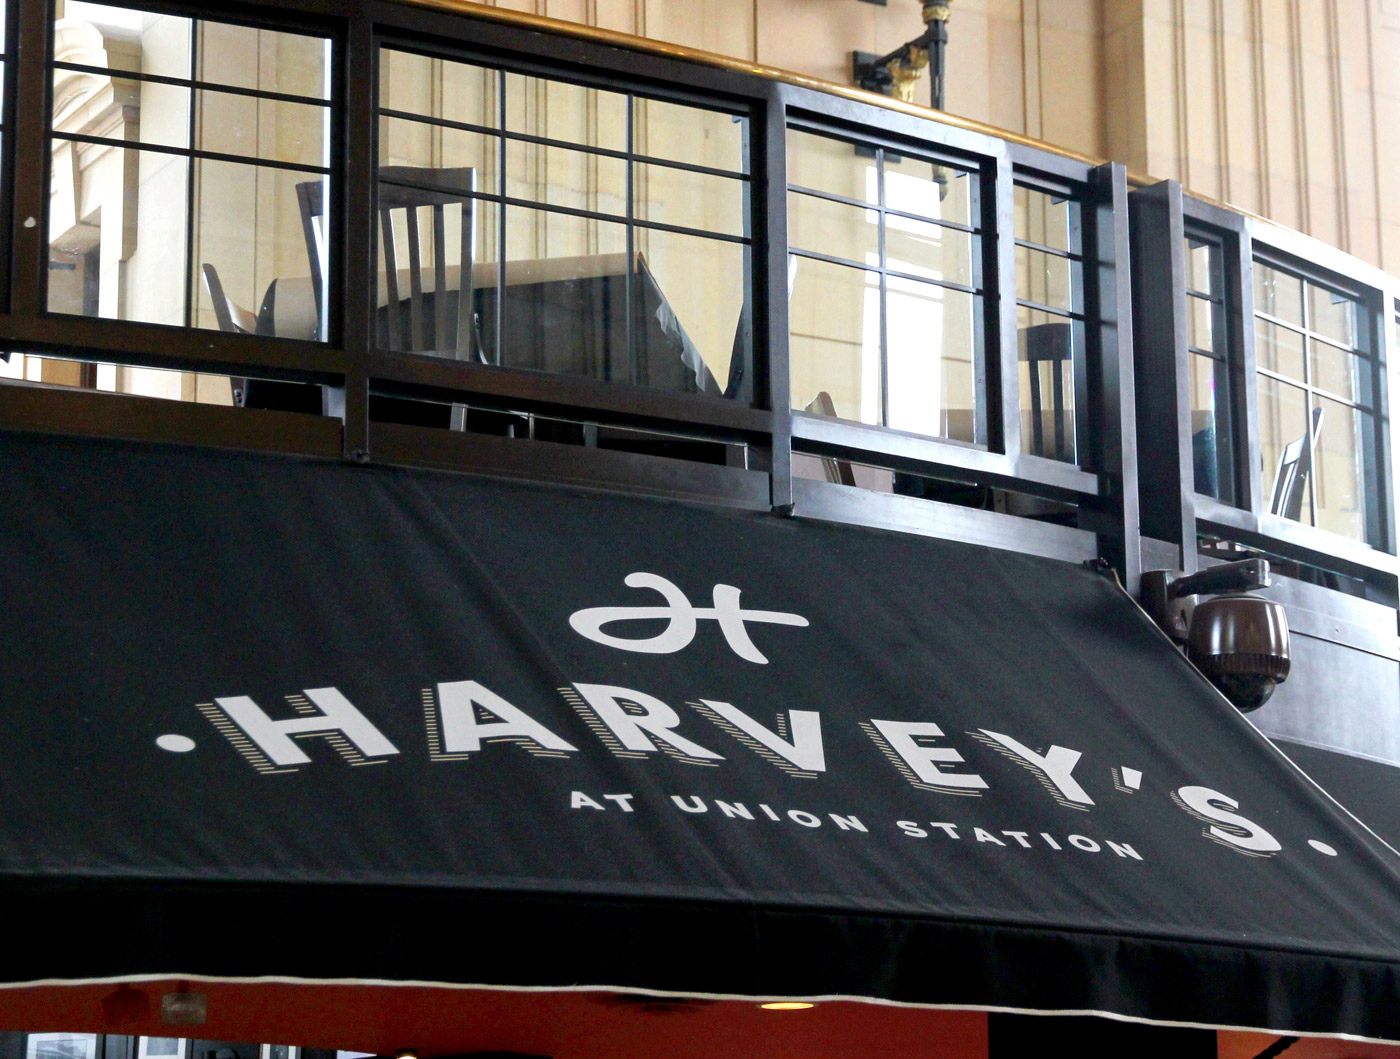 Harvey's at Union Square Restaurant branding